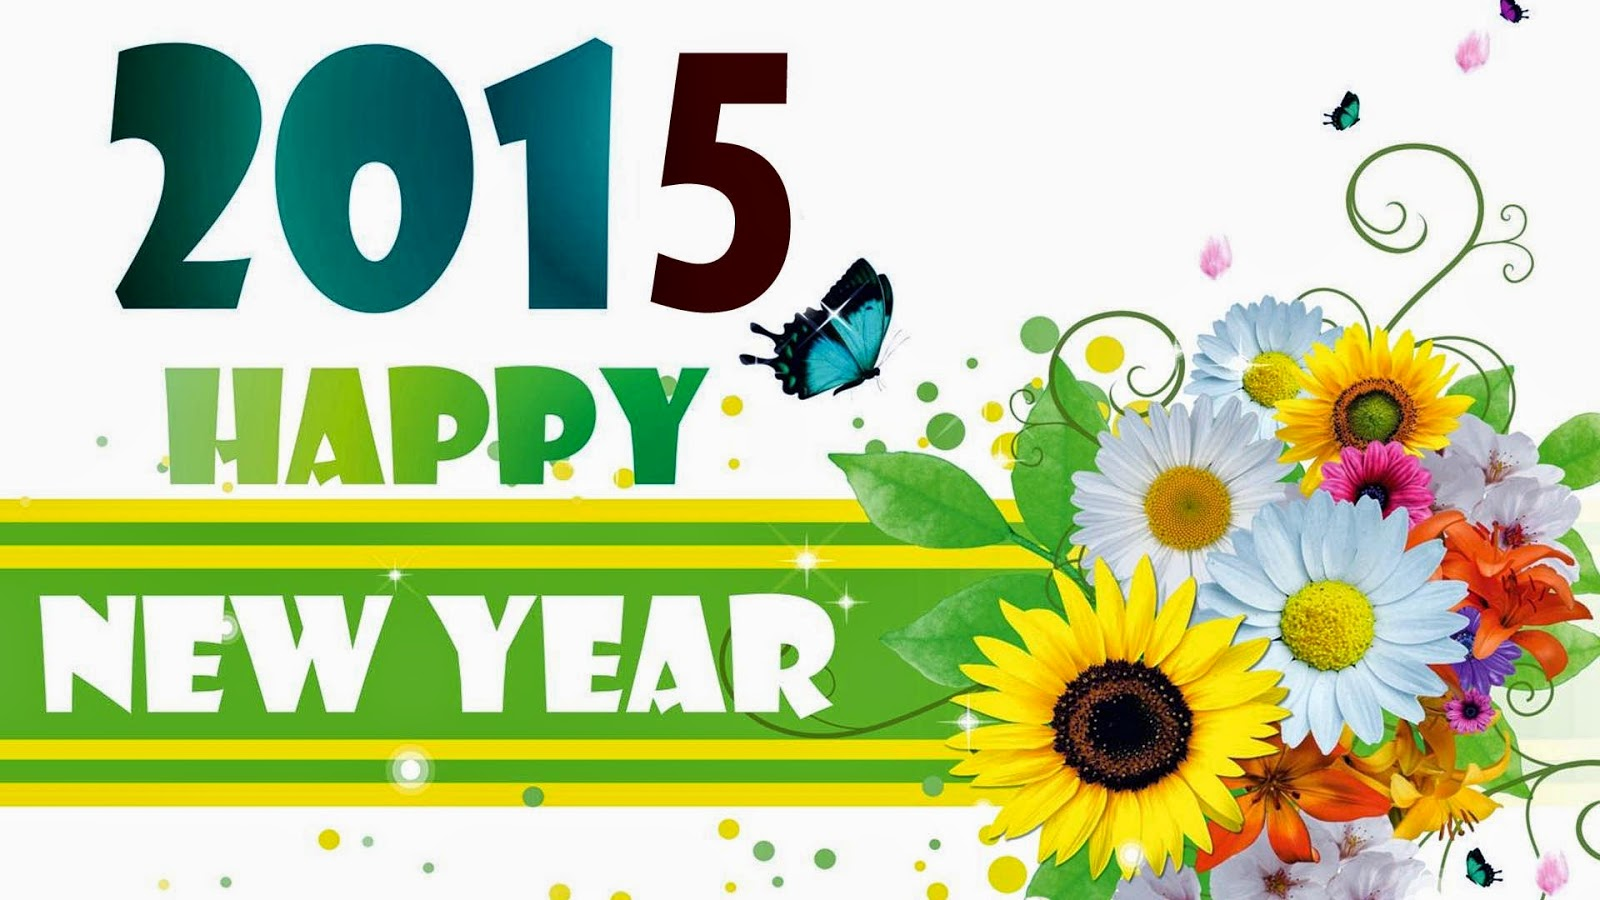 Happy-New-Year-2015-With-Flowers-hd-wallpaper.jpg